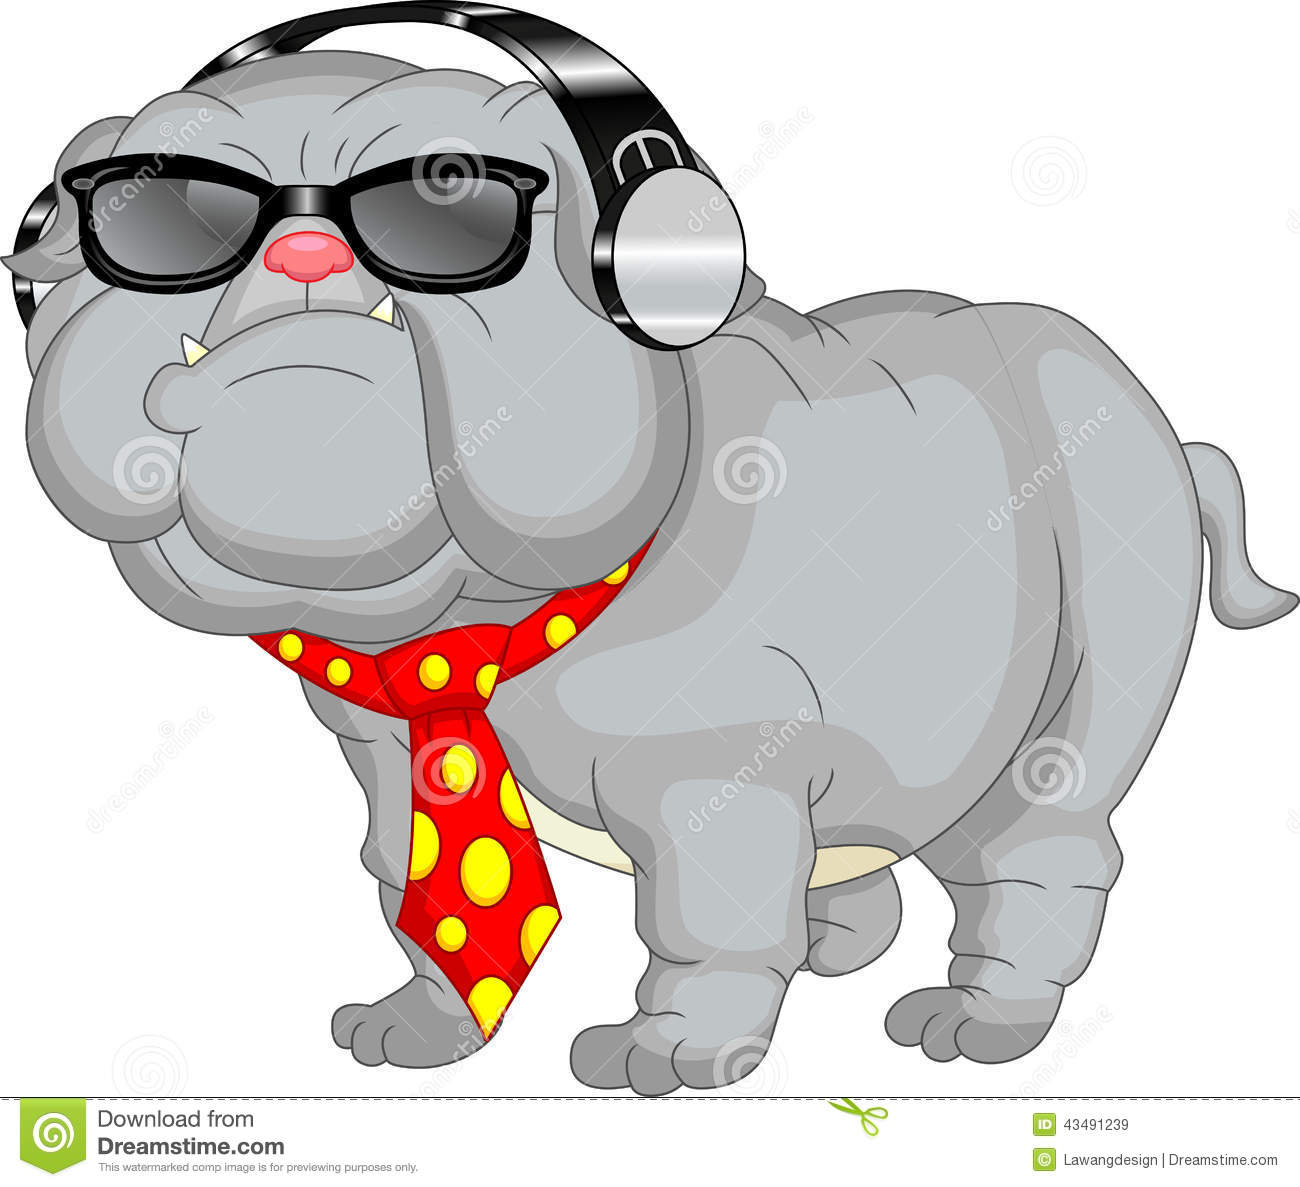 Cute english bulldog cartoon - photo#3